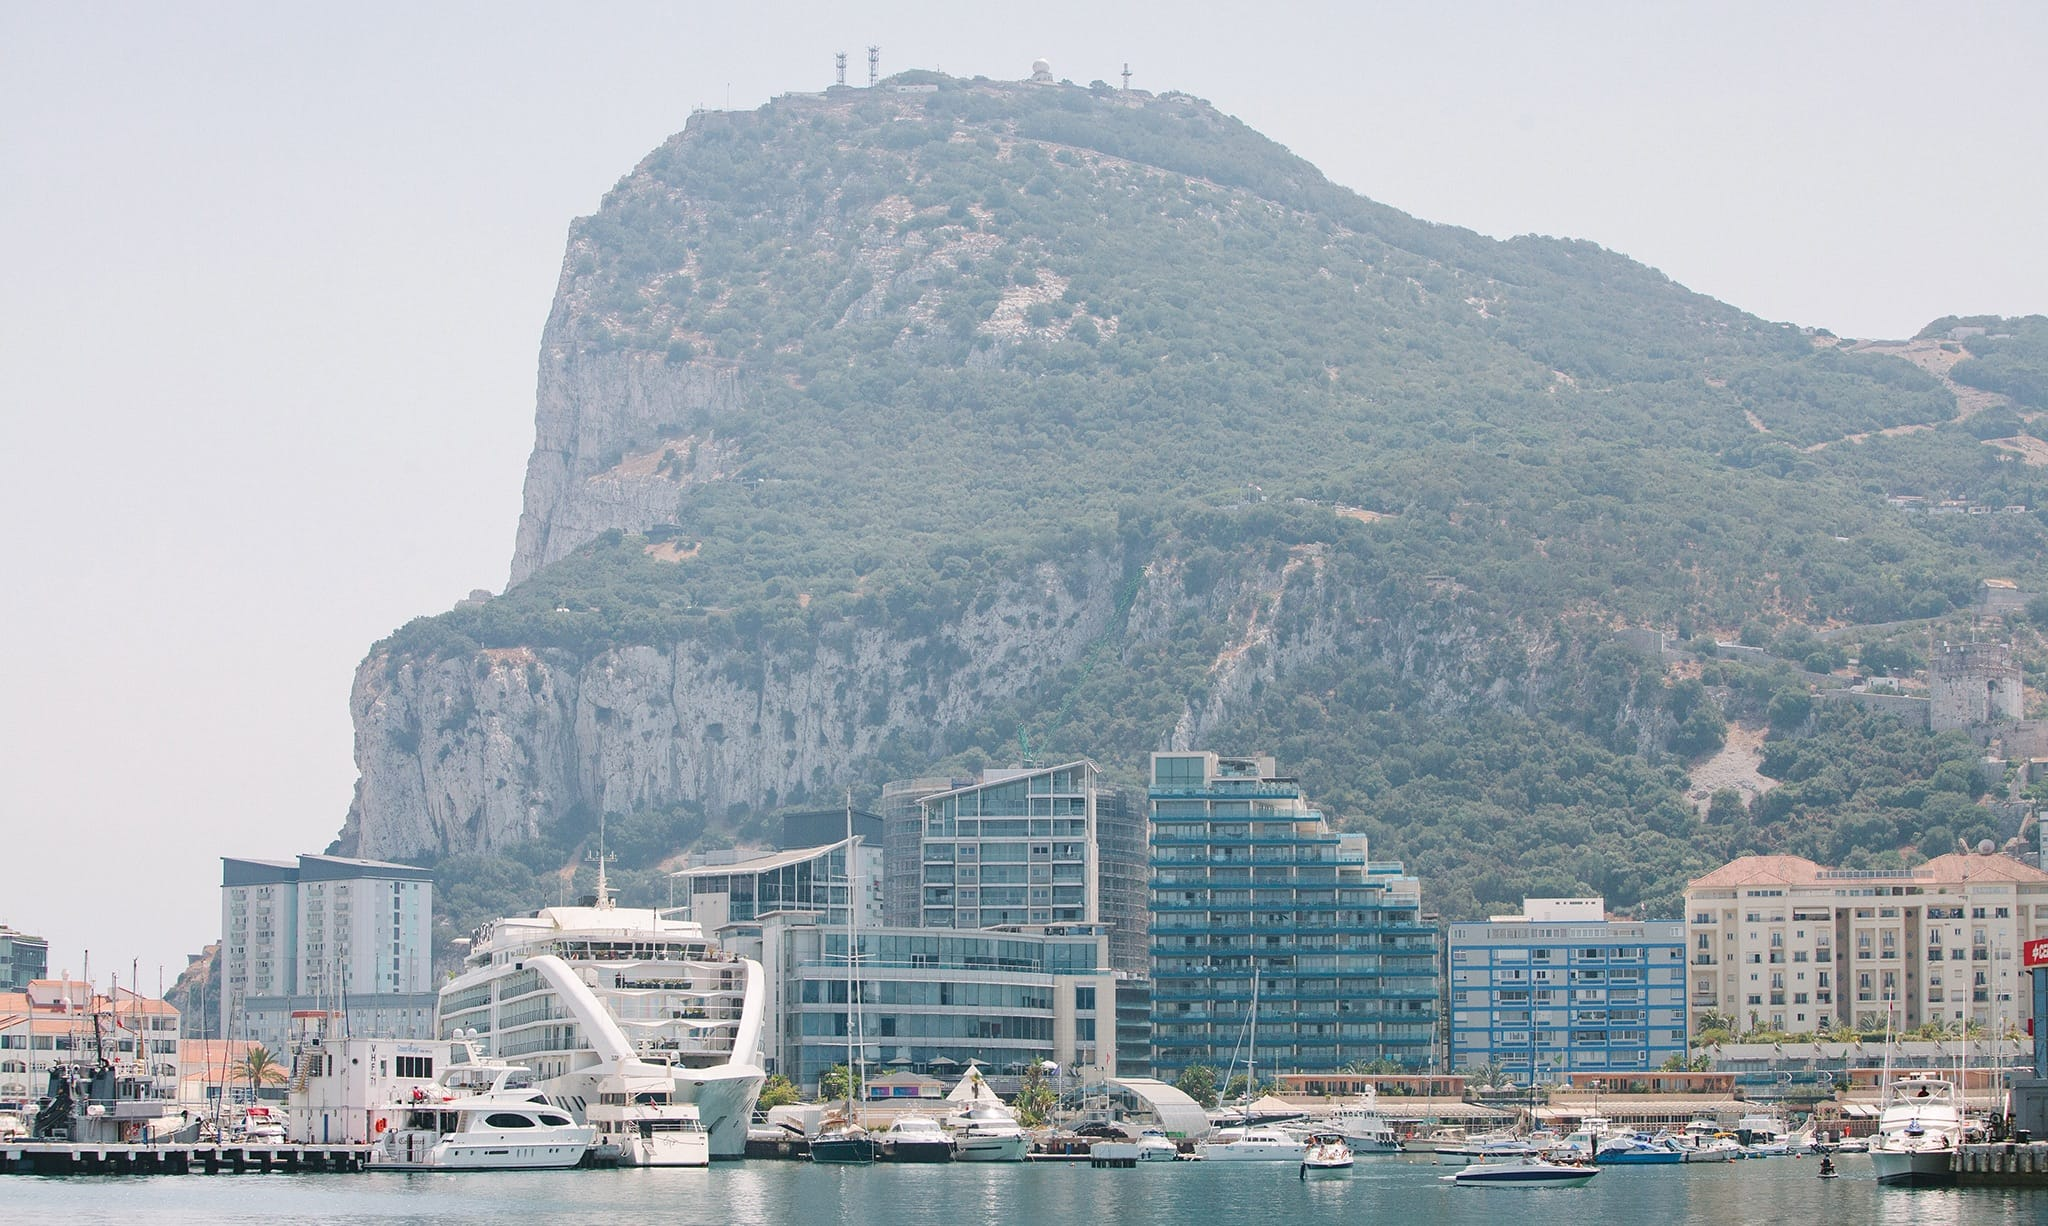 Sea view of Gibraltar coastline